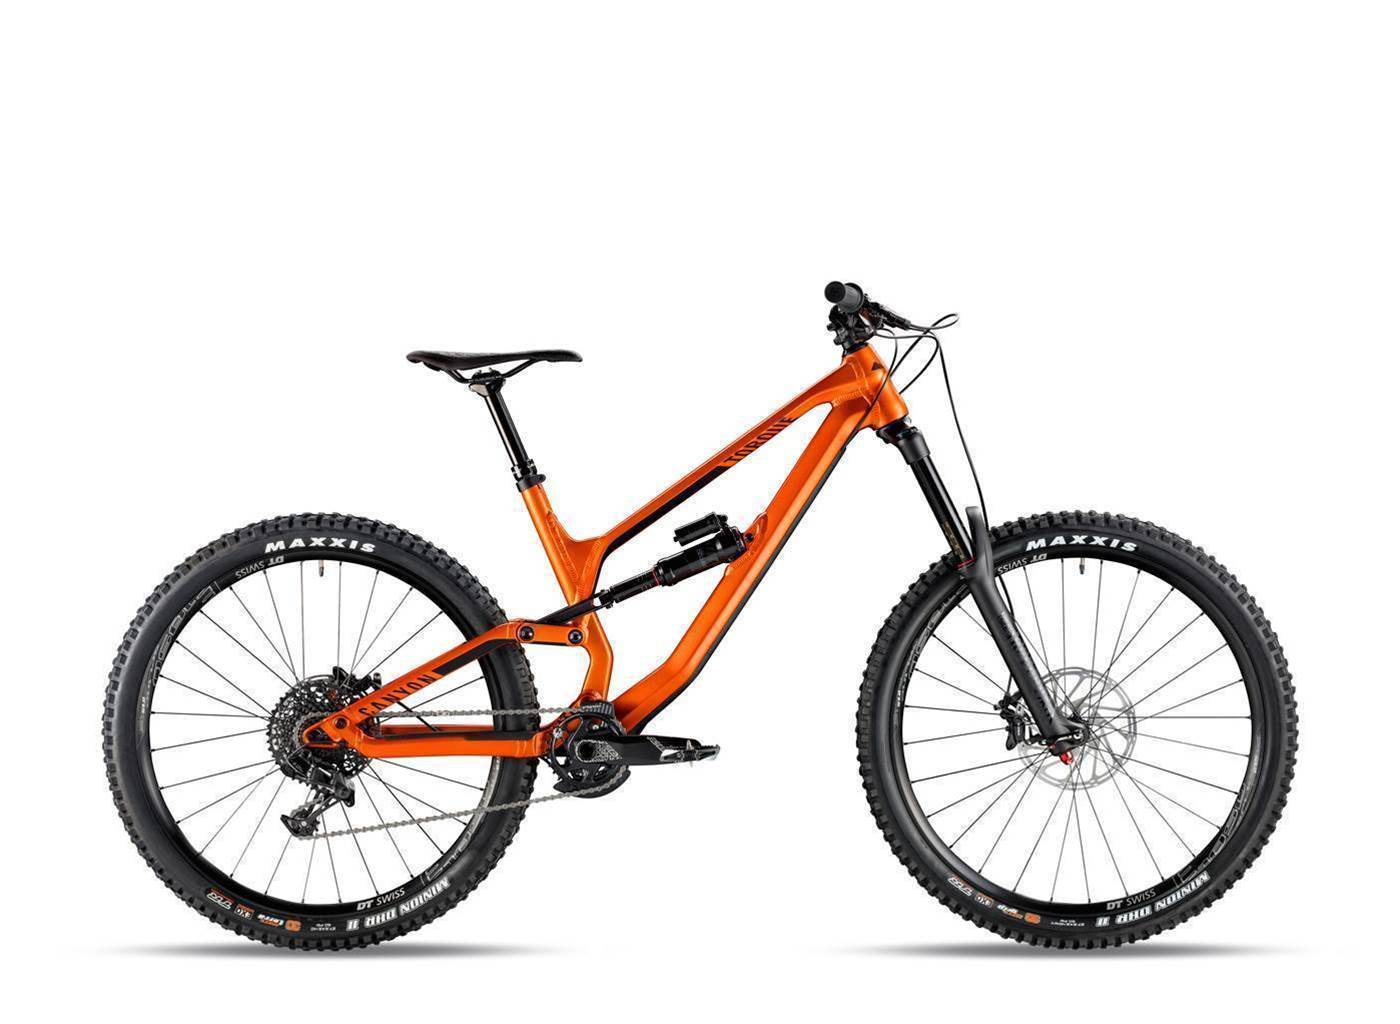 Canyon shake up their gravity range for 2018